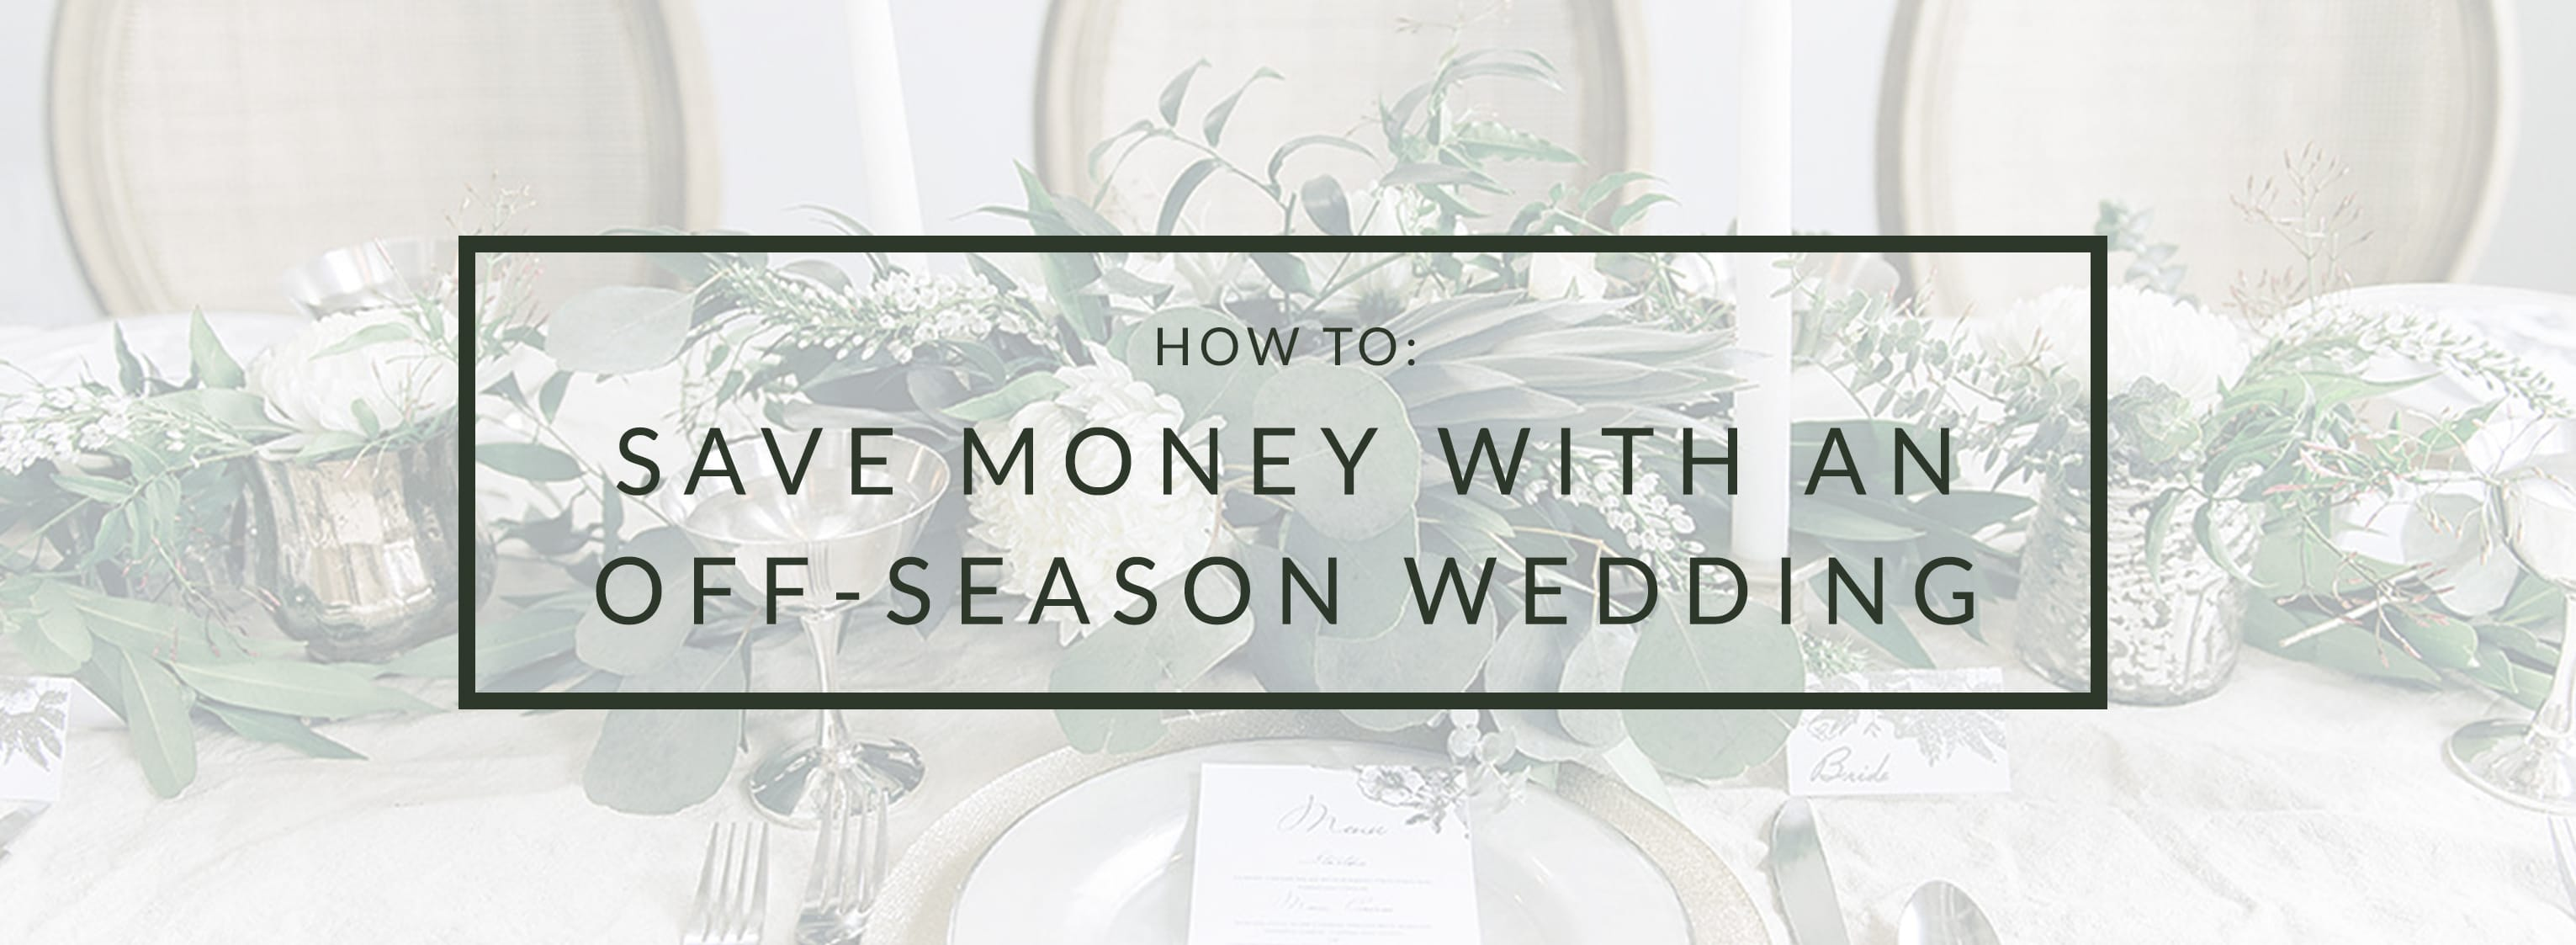 Save Money with an Off-Season Wedding: Plan Your Wedding with Maggie Sottero